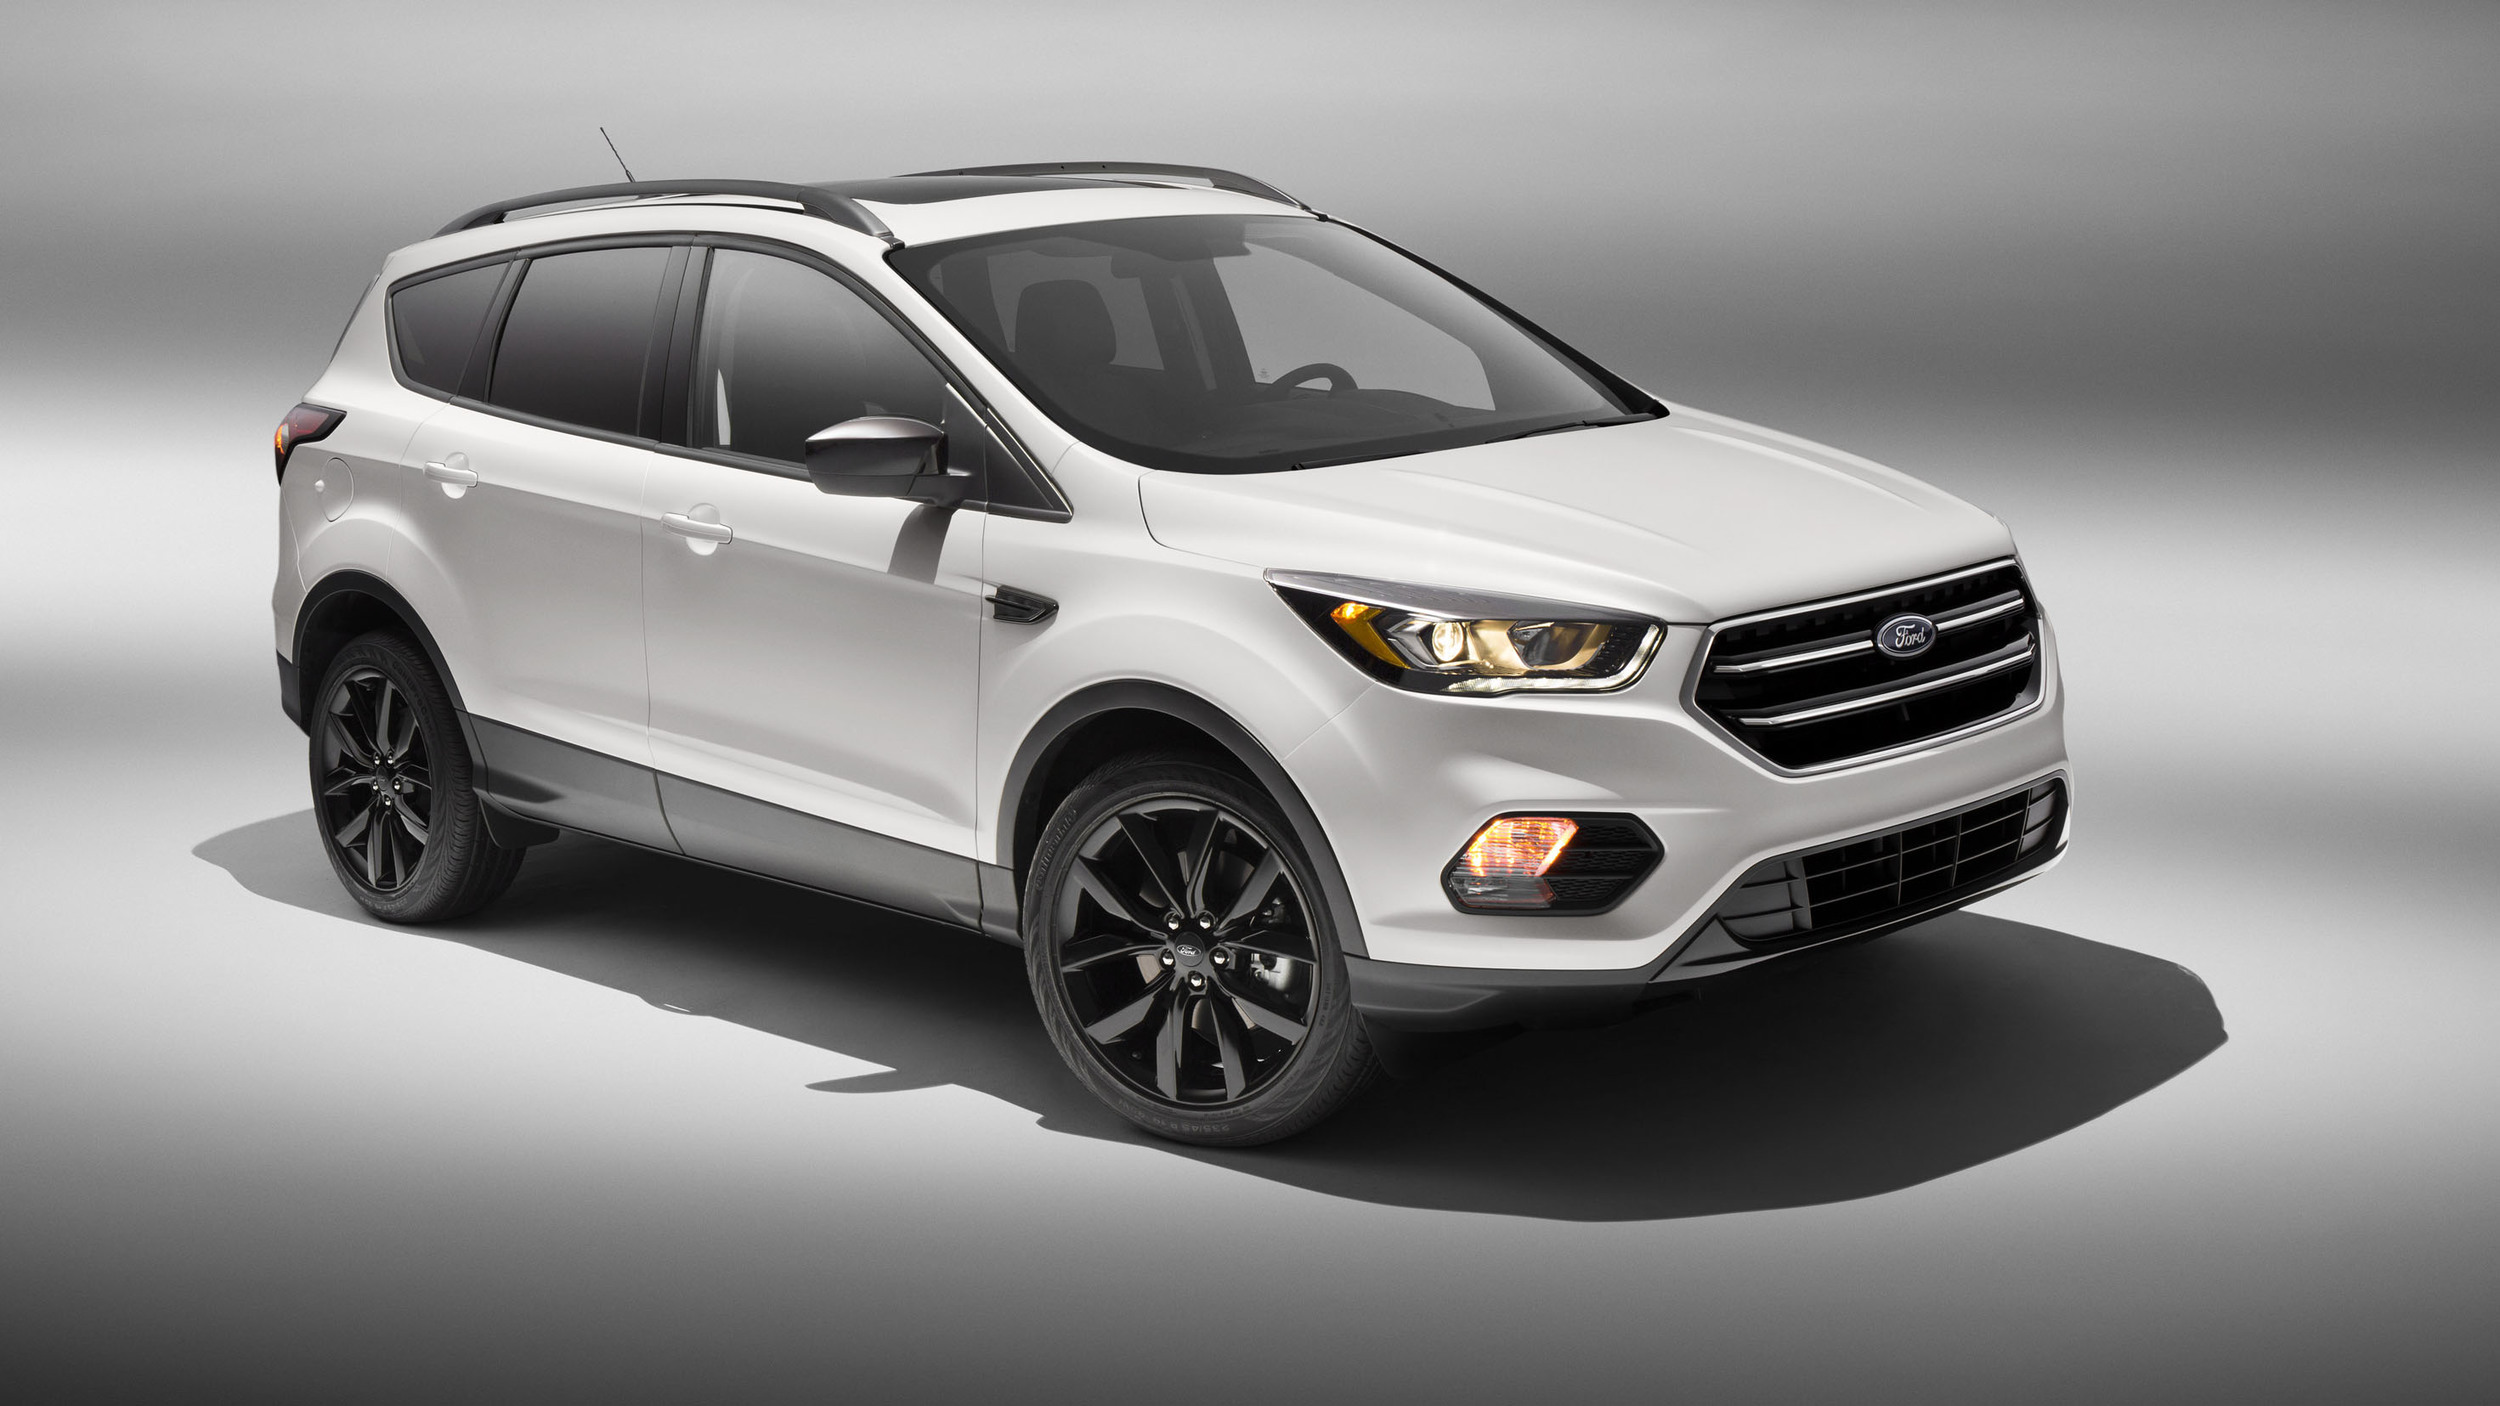 2017 escape configurator is open archive ford inside news community